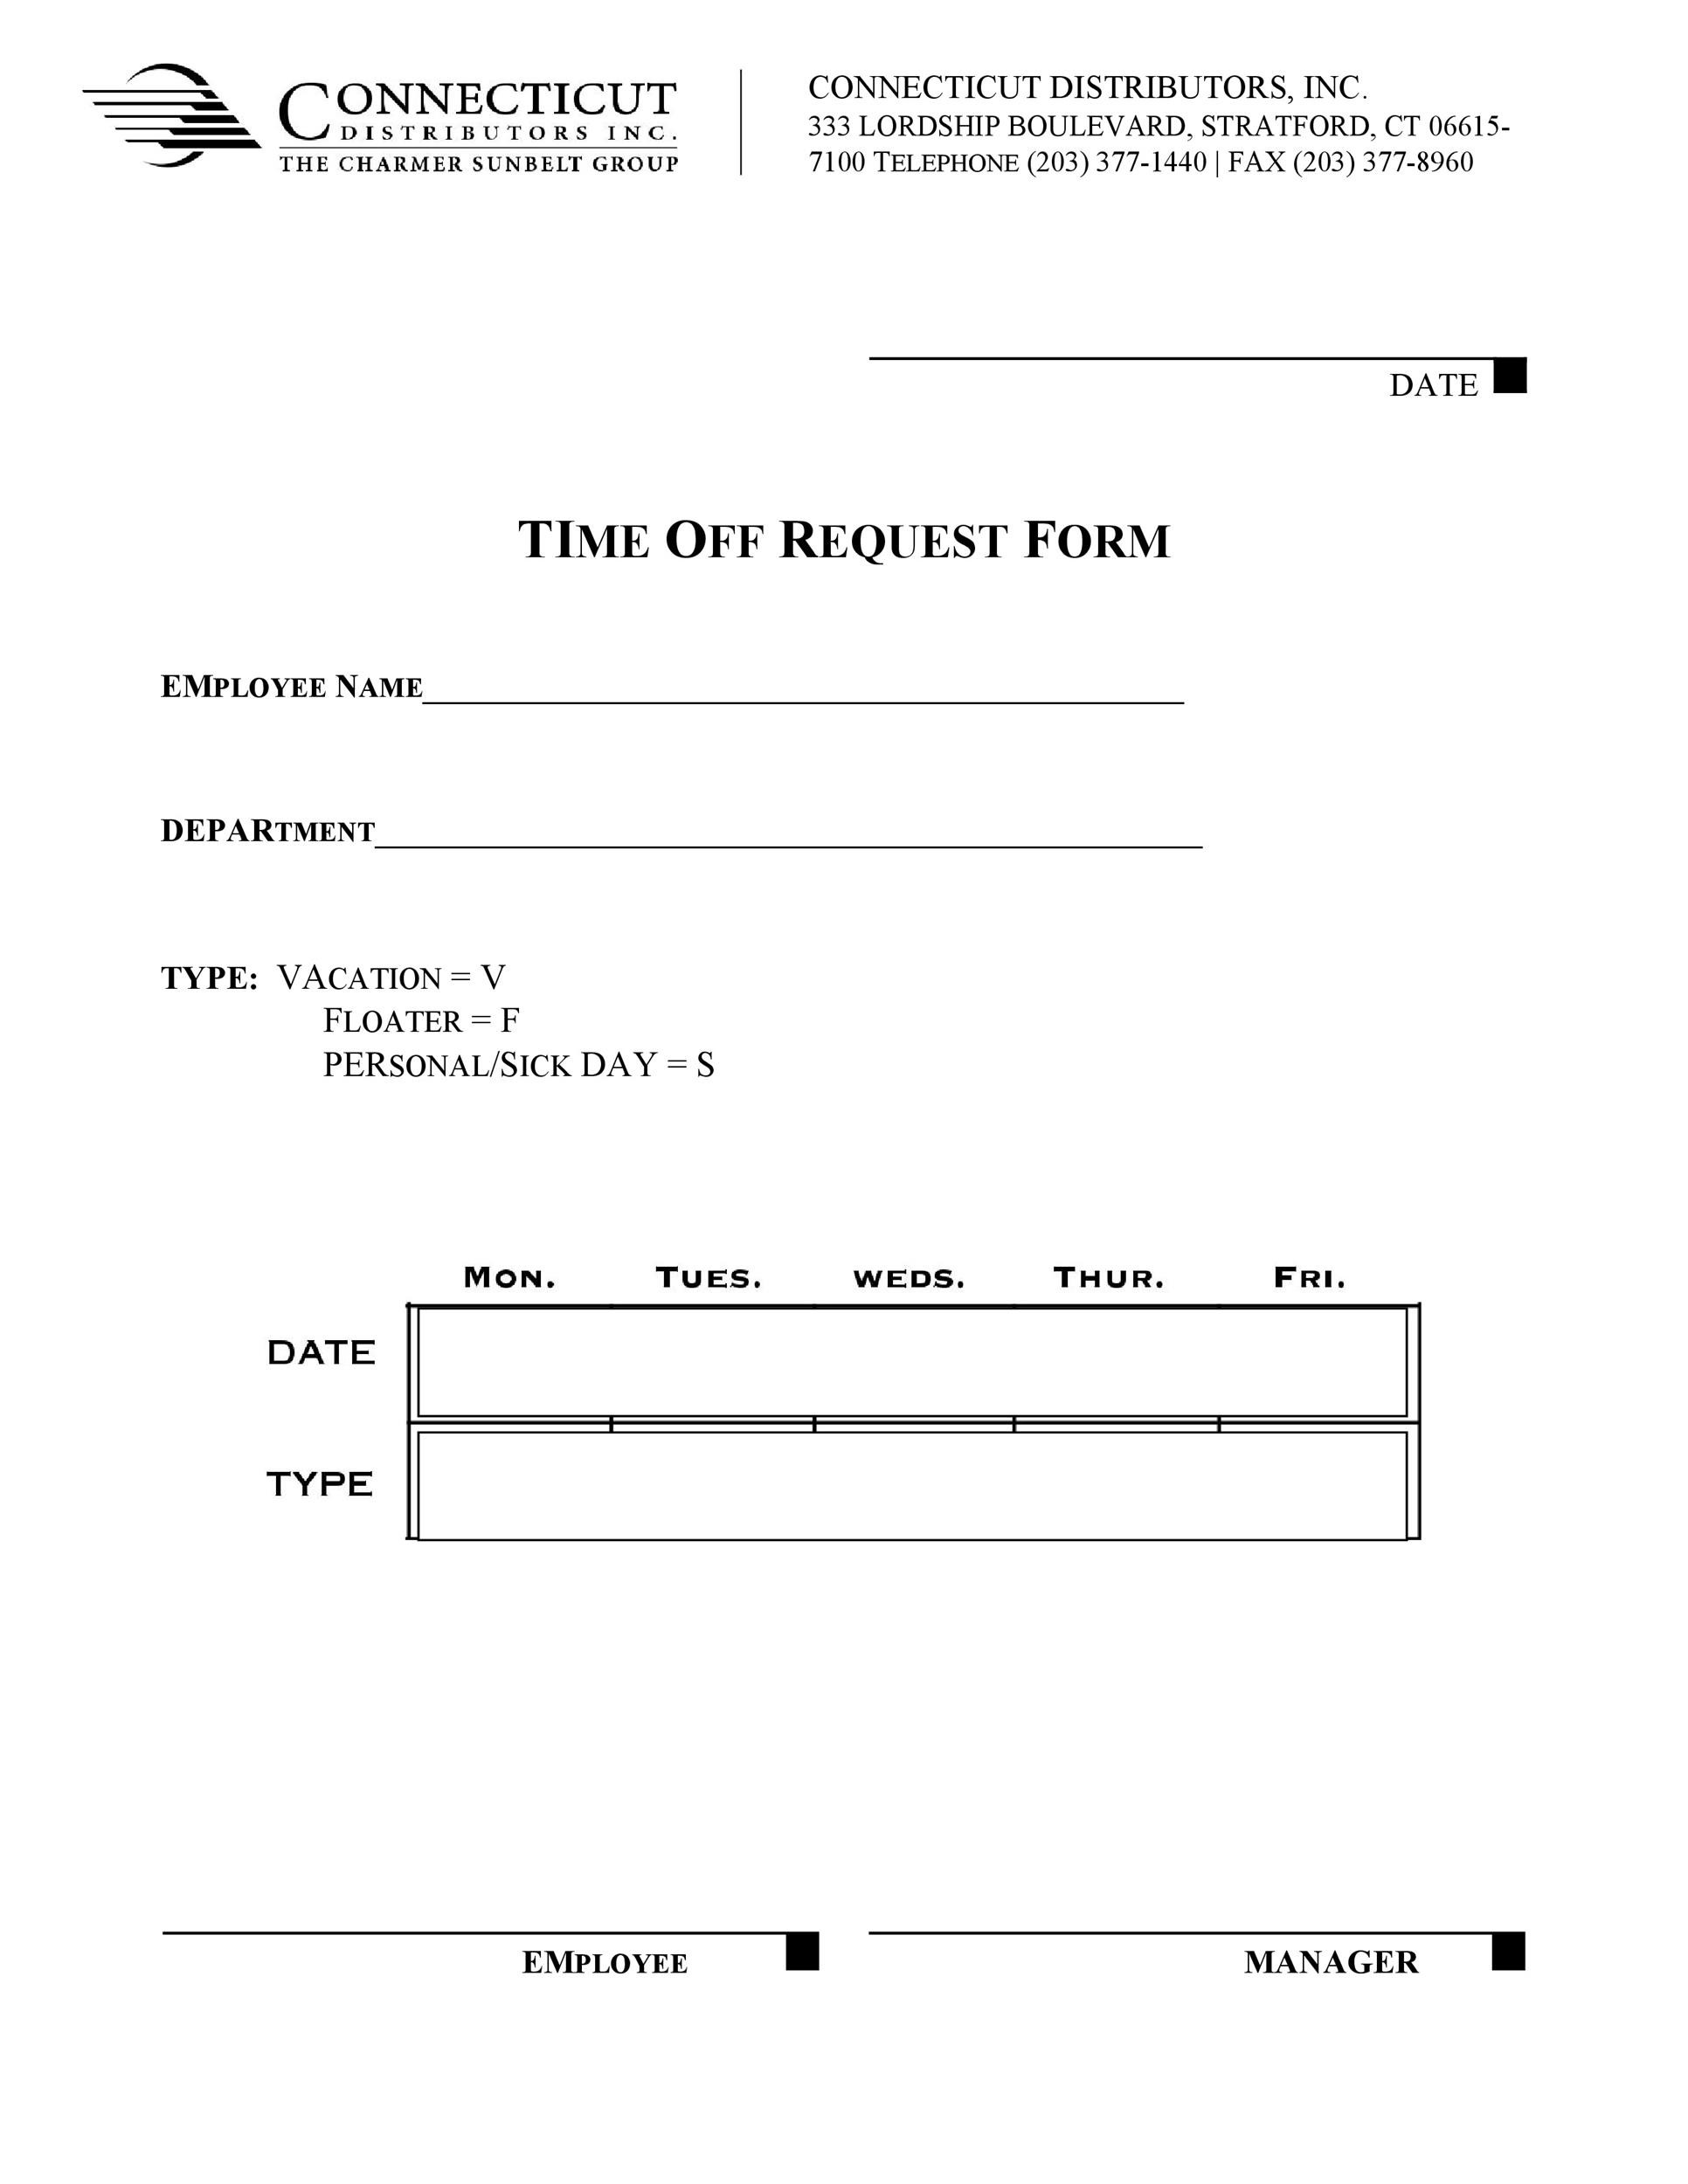 request for time off form efficiencyexperts - request for time off form